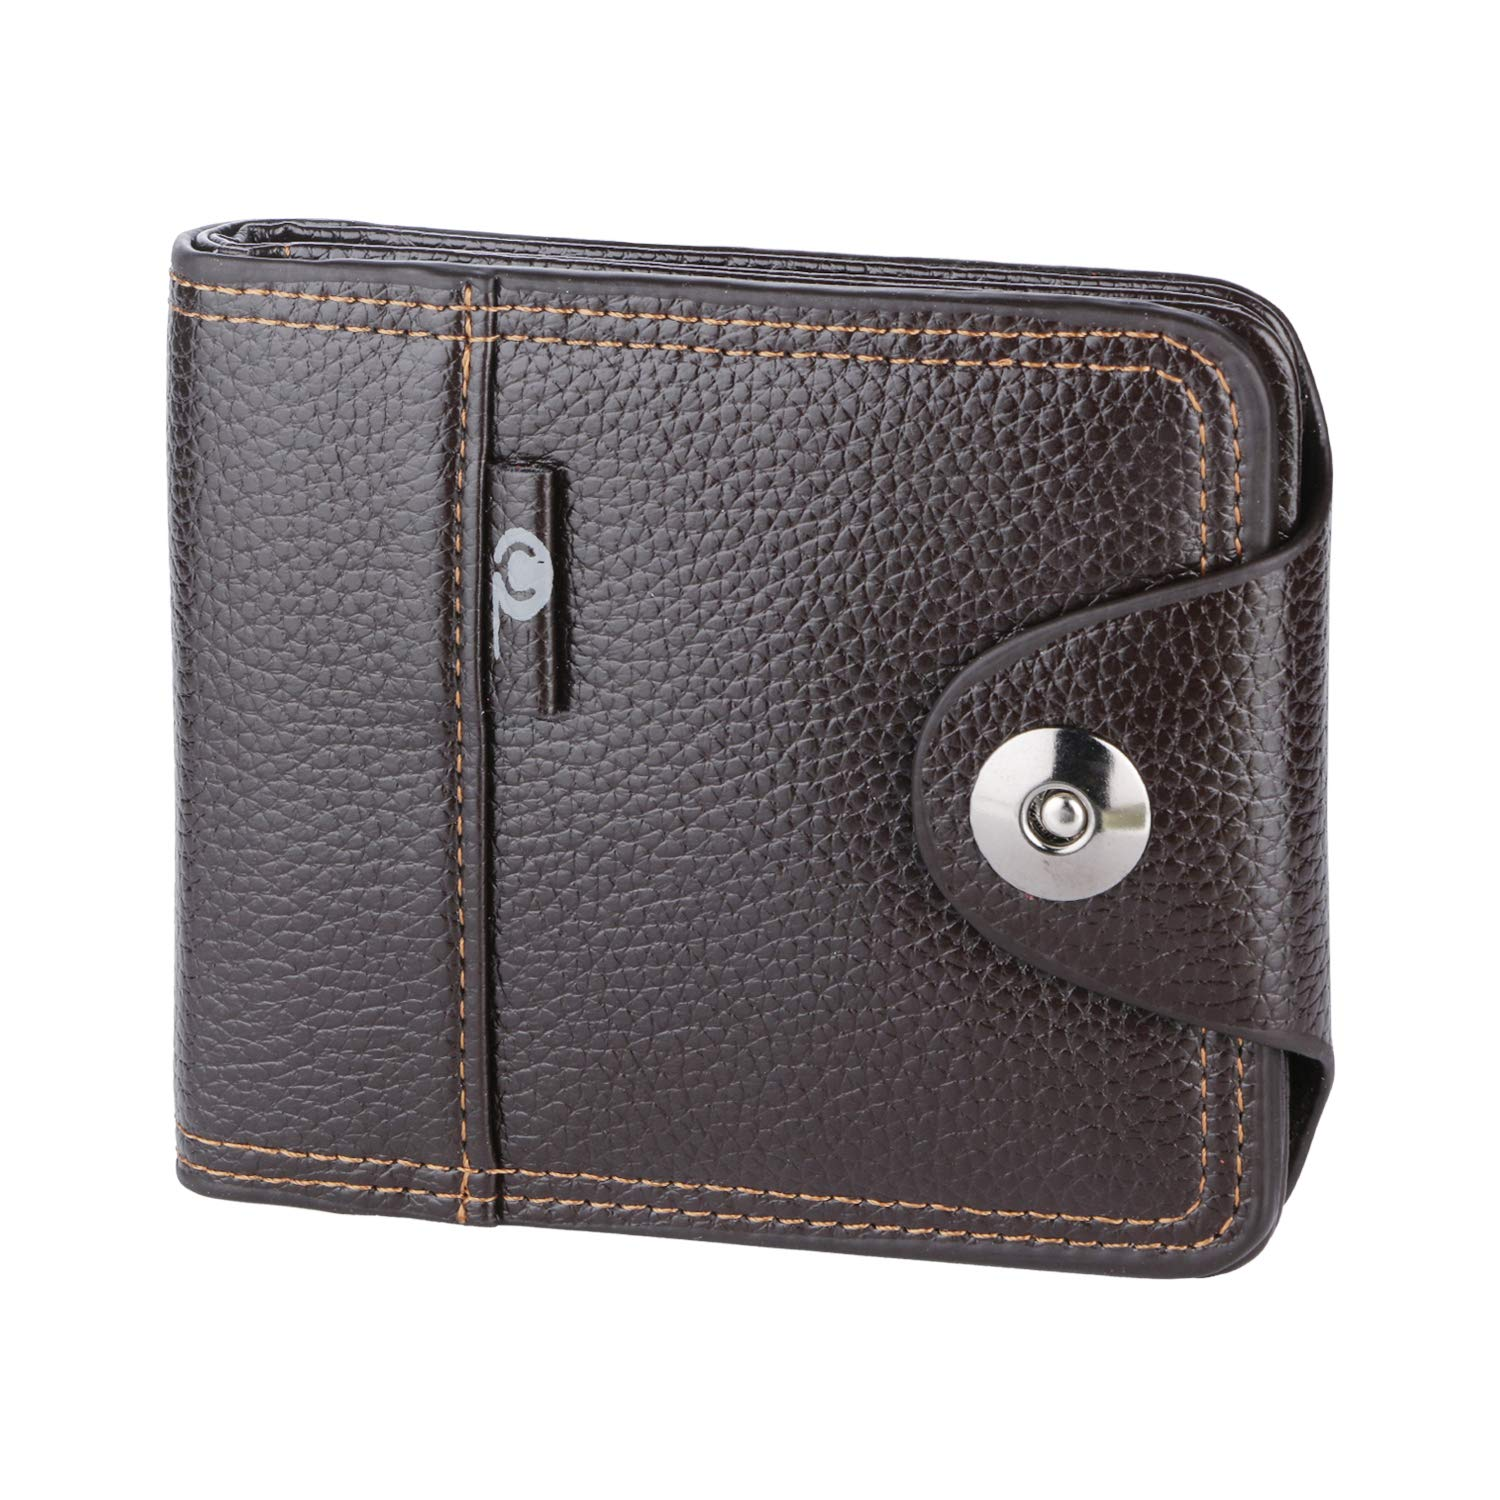 JARS Collections Stylish Faux leather Wallet